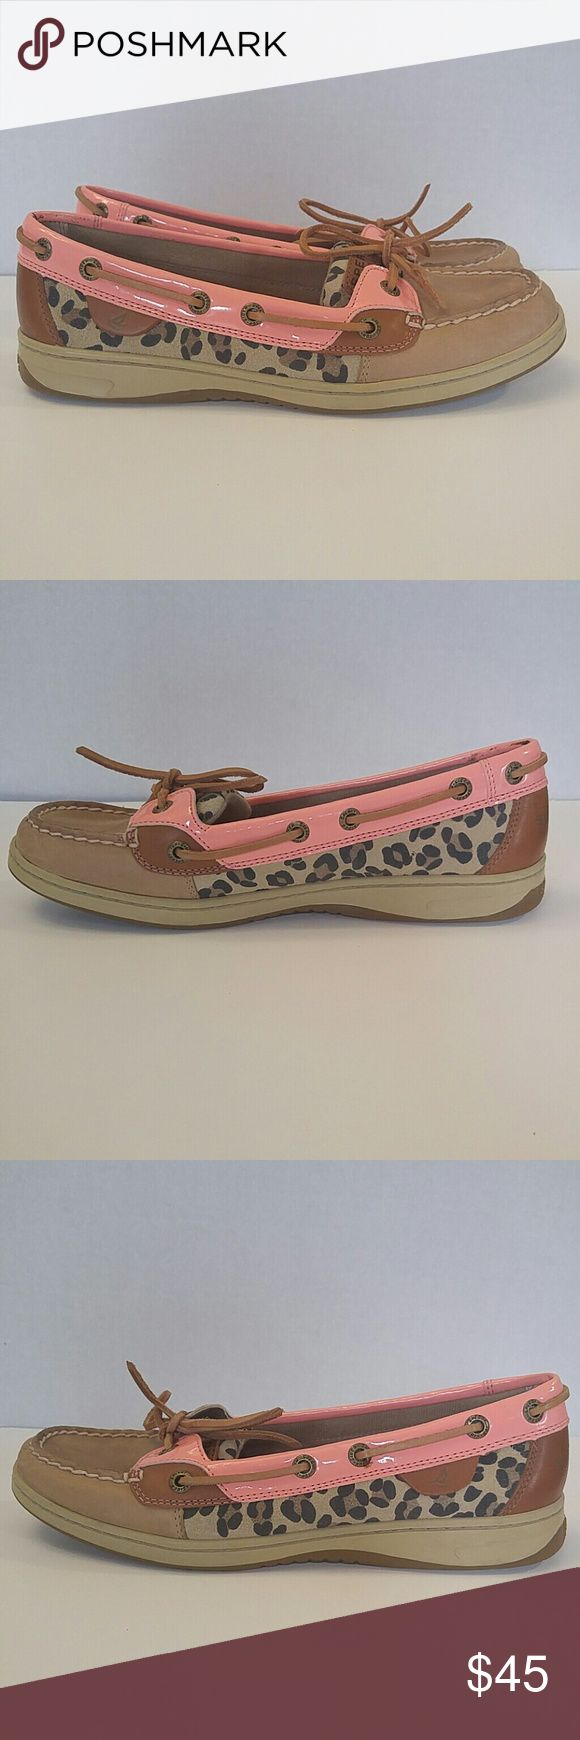 Sperry Angelfish Topsider Excellent condition ( worn once ) Sperry Angelfish Topsider. Linen/Peach Pink/Leopard Sperry Top-Sider Shoes Flats & Loafers